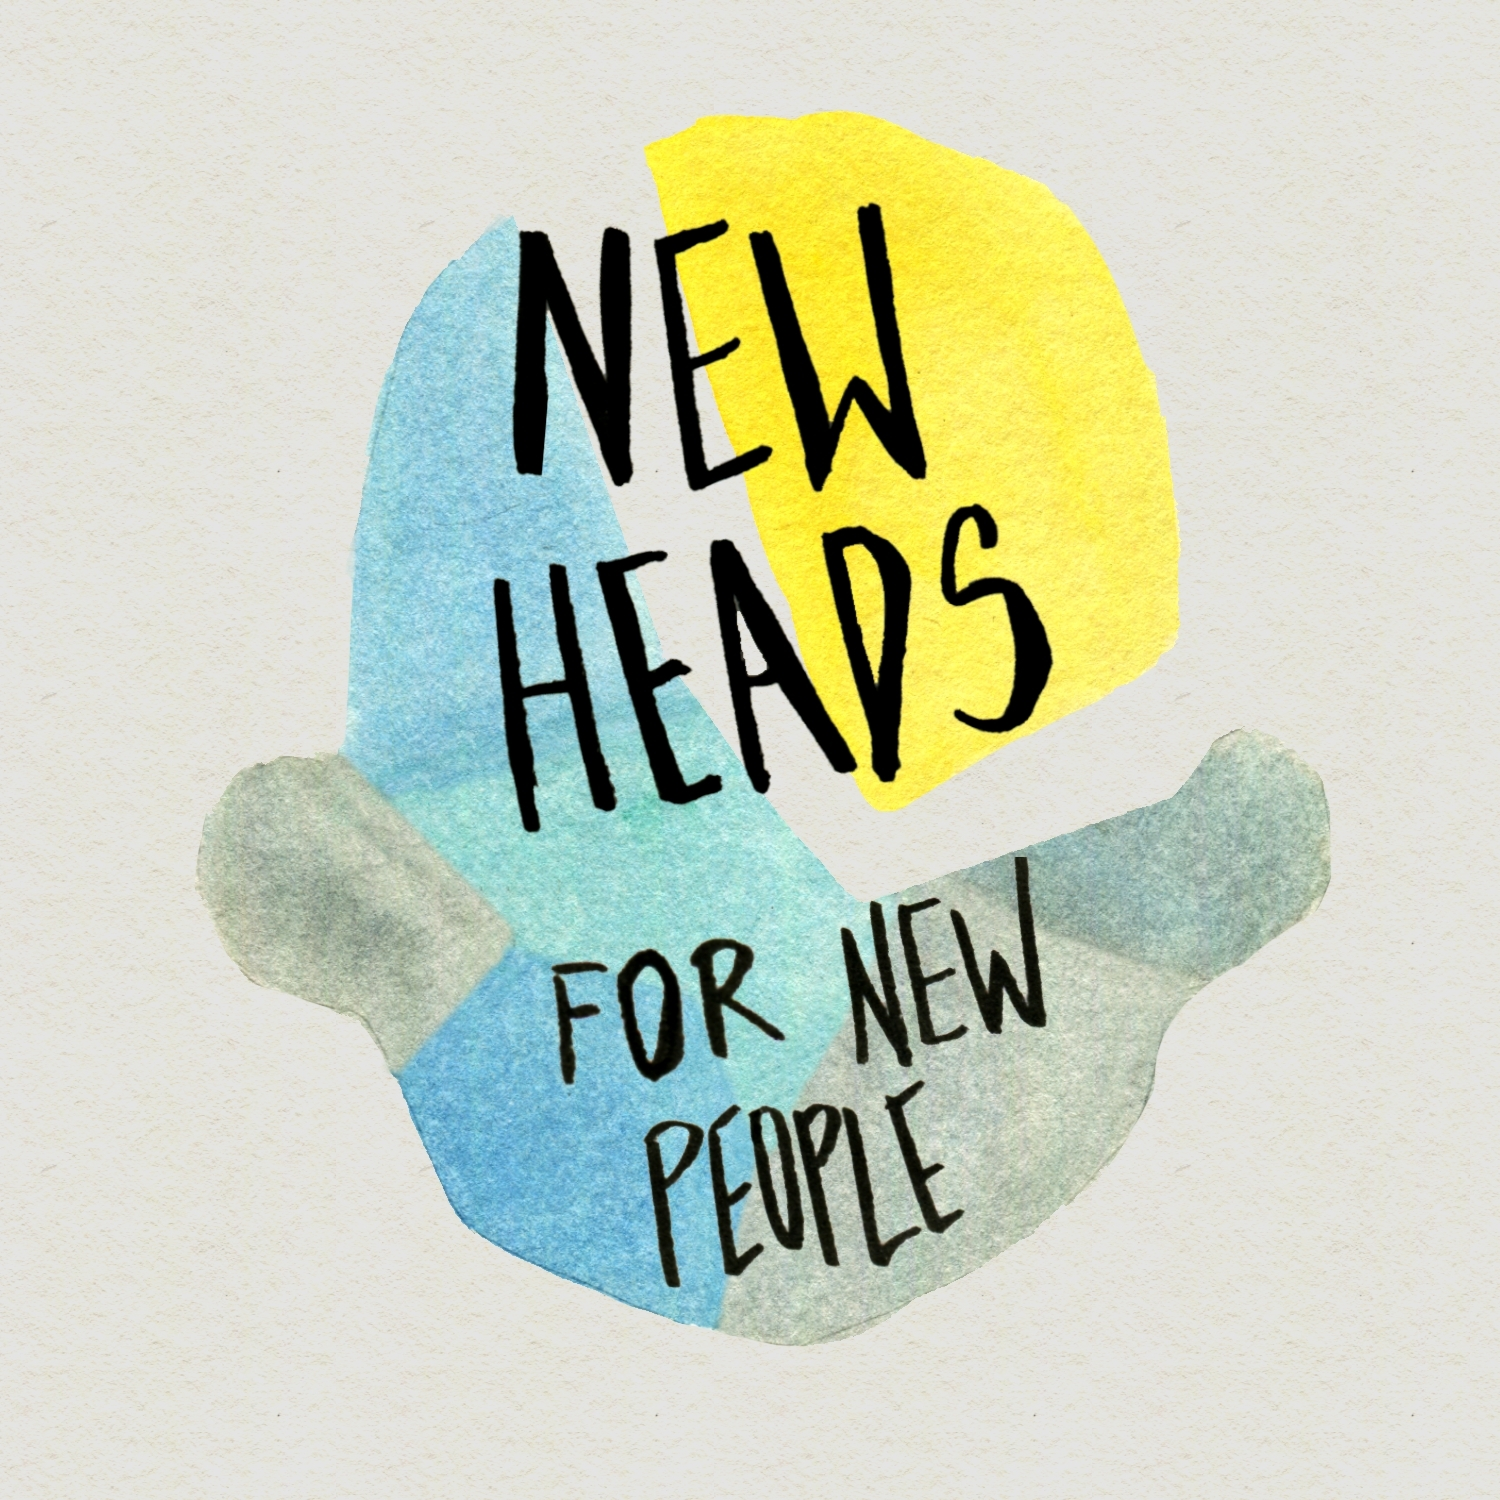 New Heads For New People